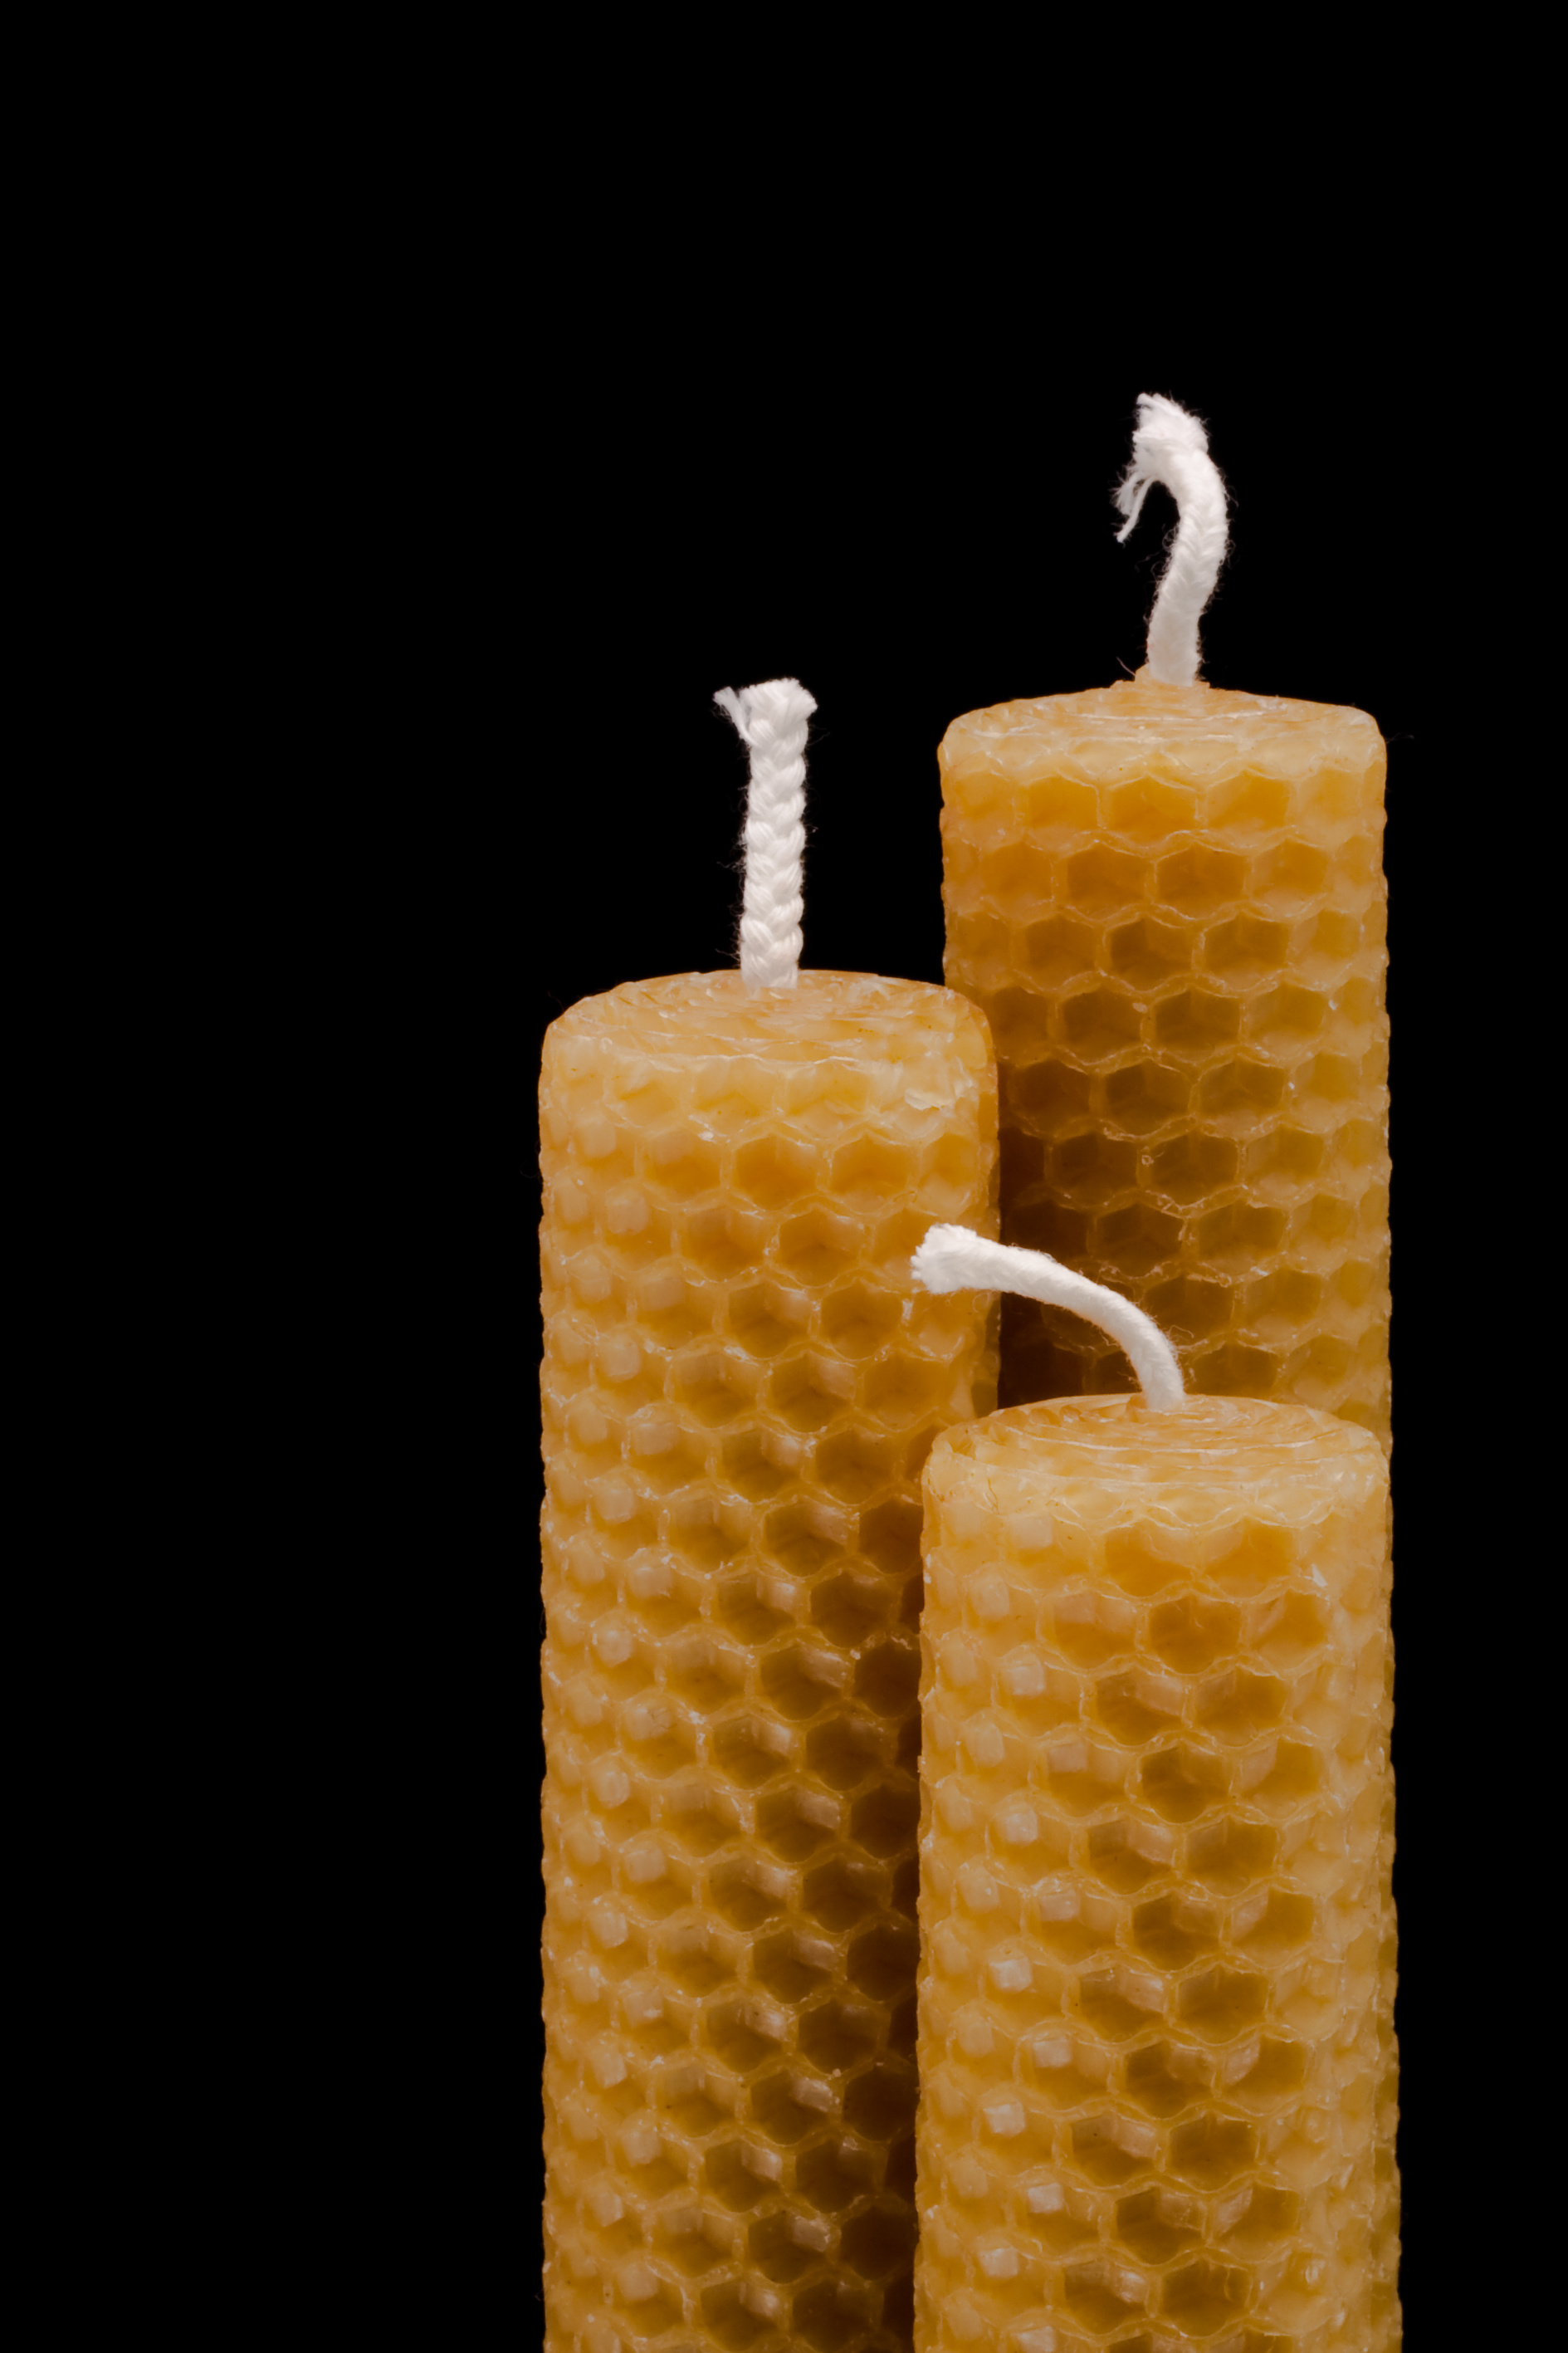 Money Making Ideas: Candle Making Business